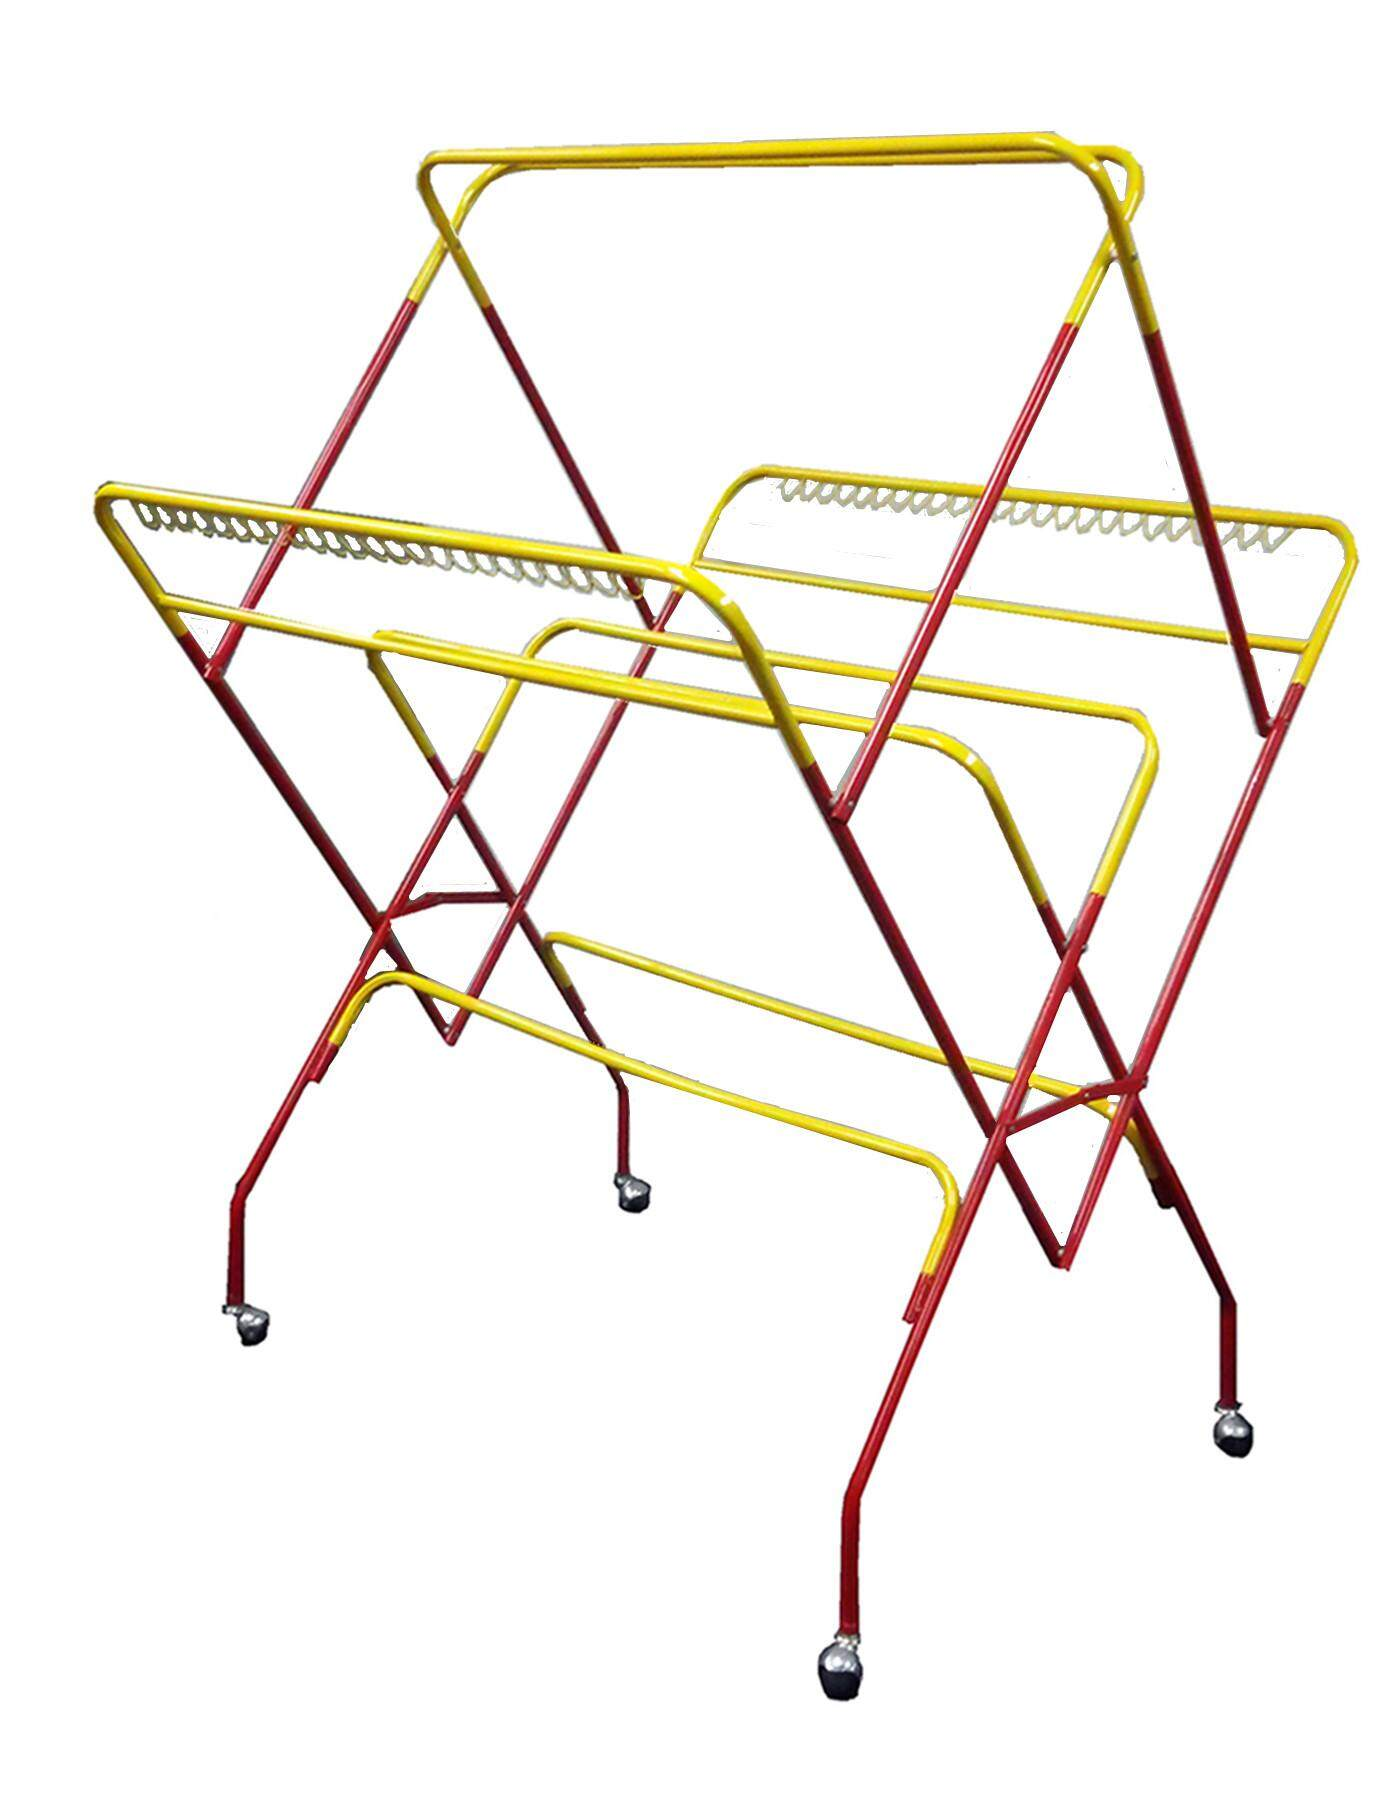 (LZ) 323 Portable Cloth Drying Rack (10 Bars)